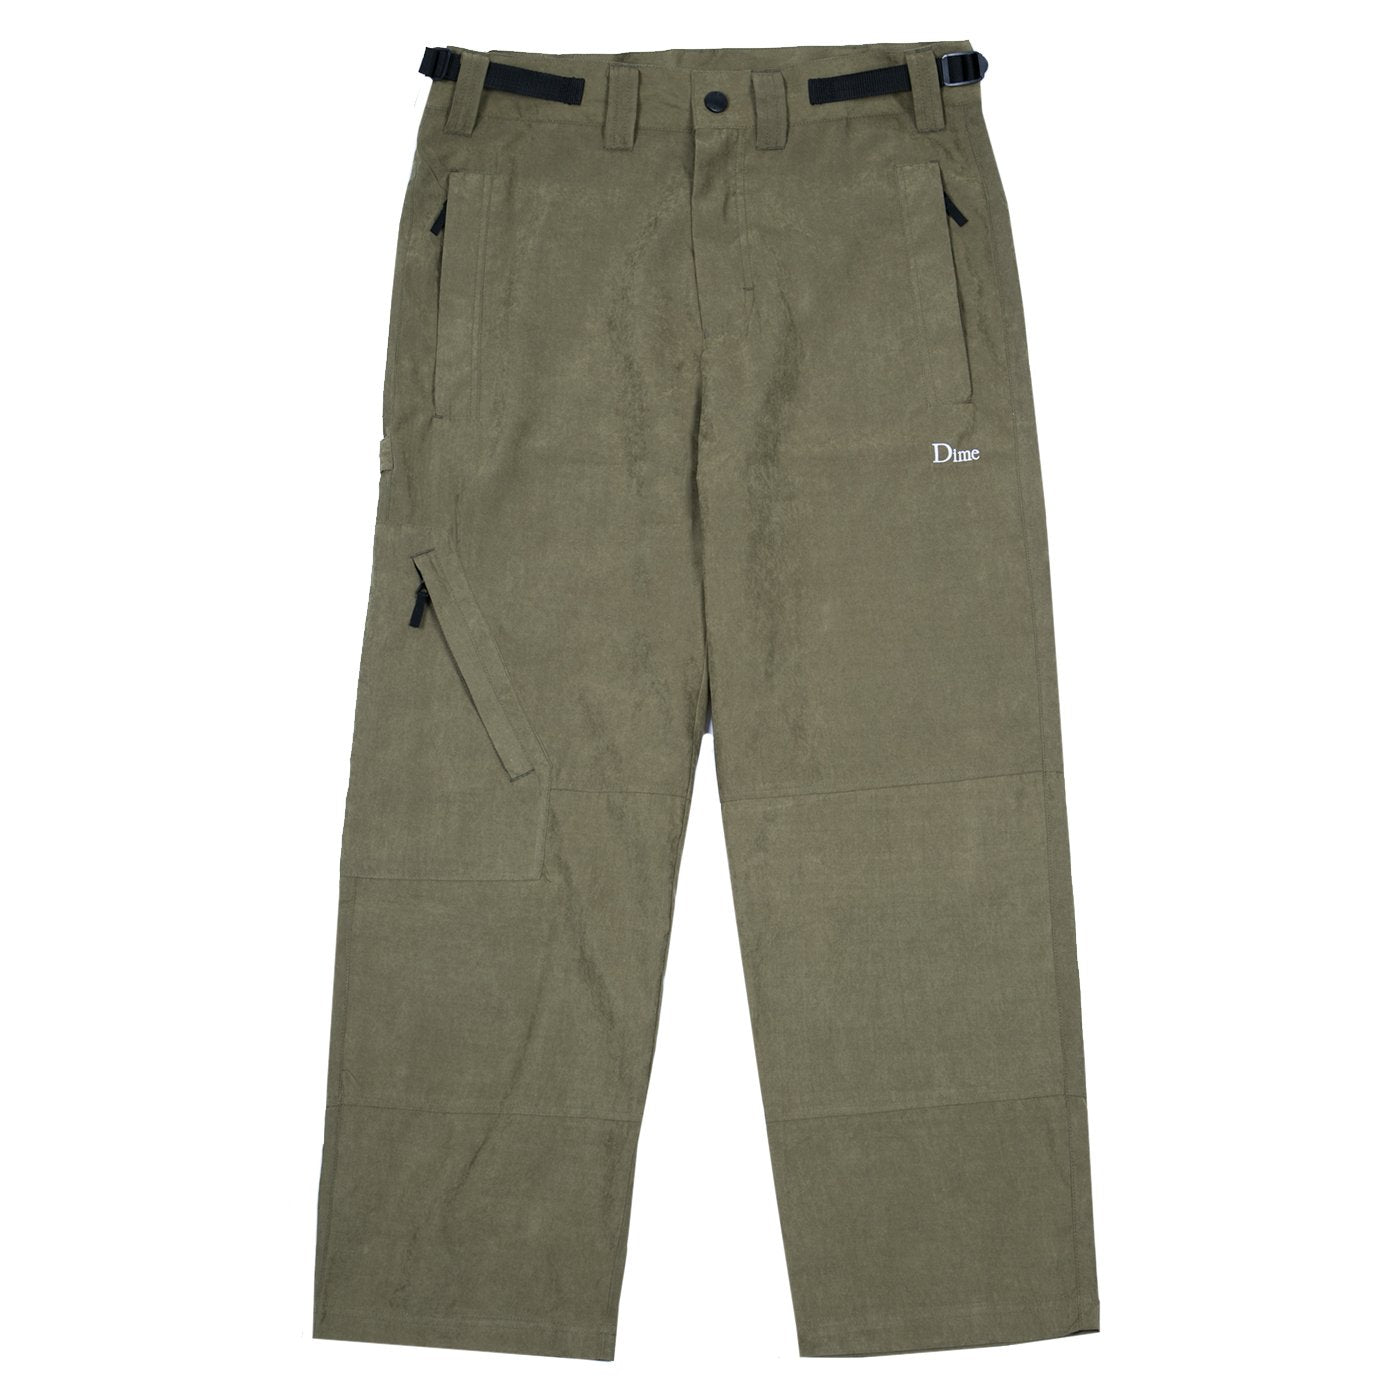 Dime Hiking Pants Product Photo #1